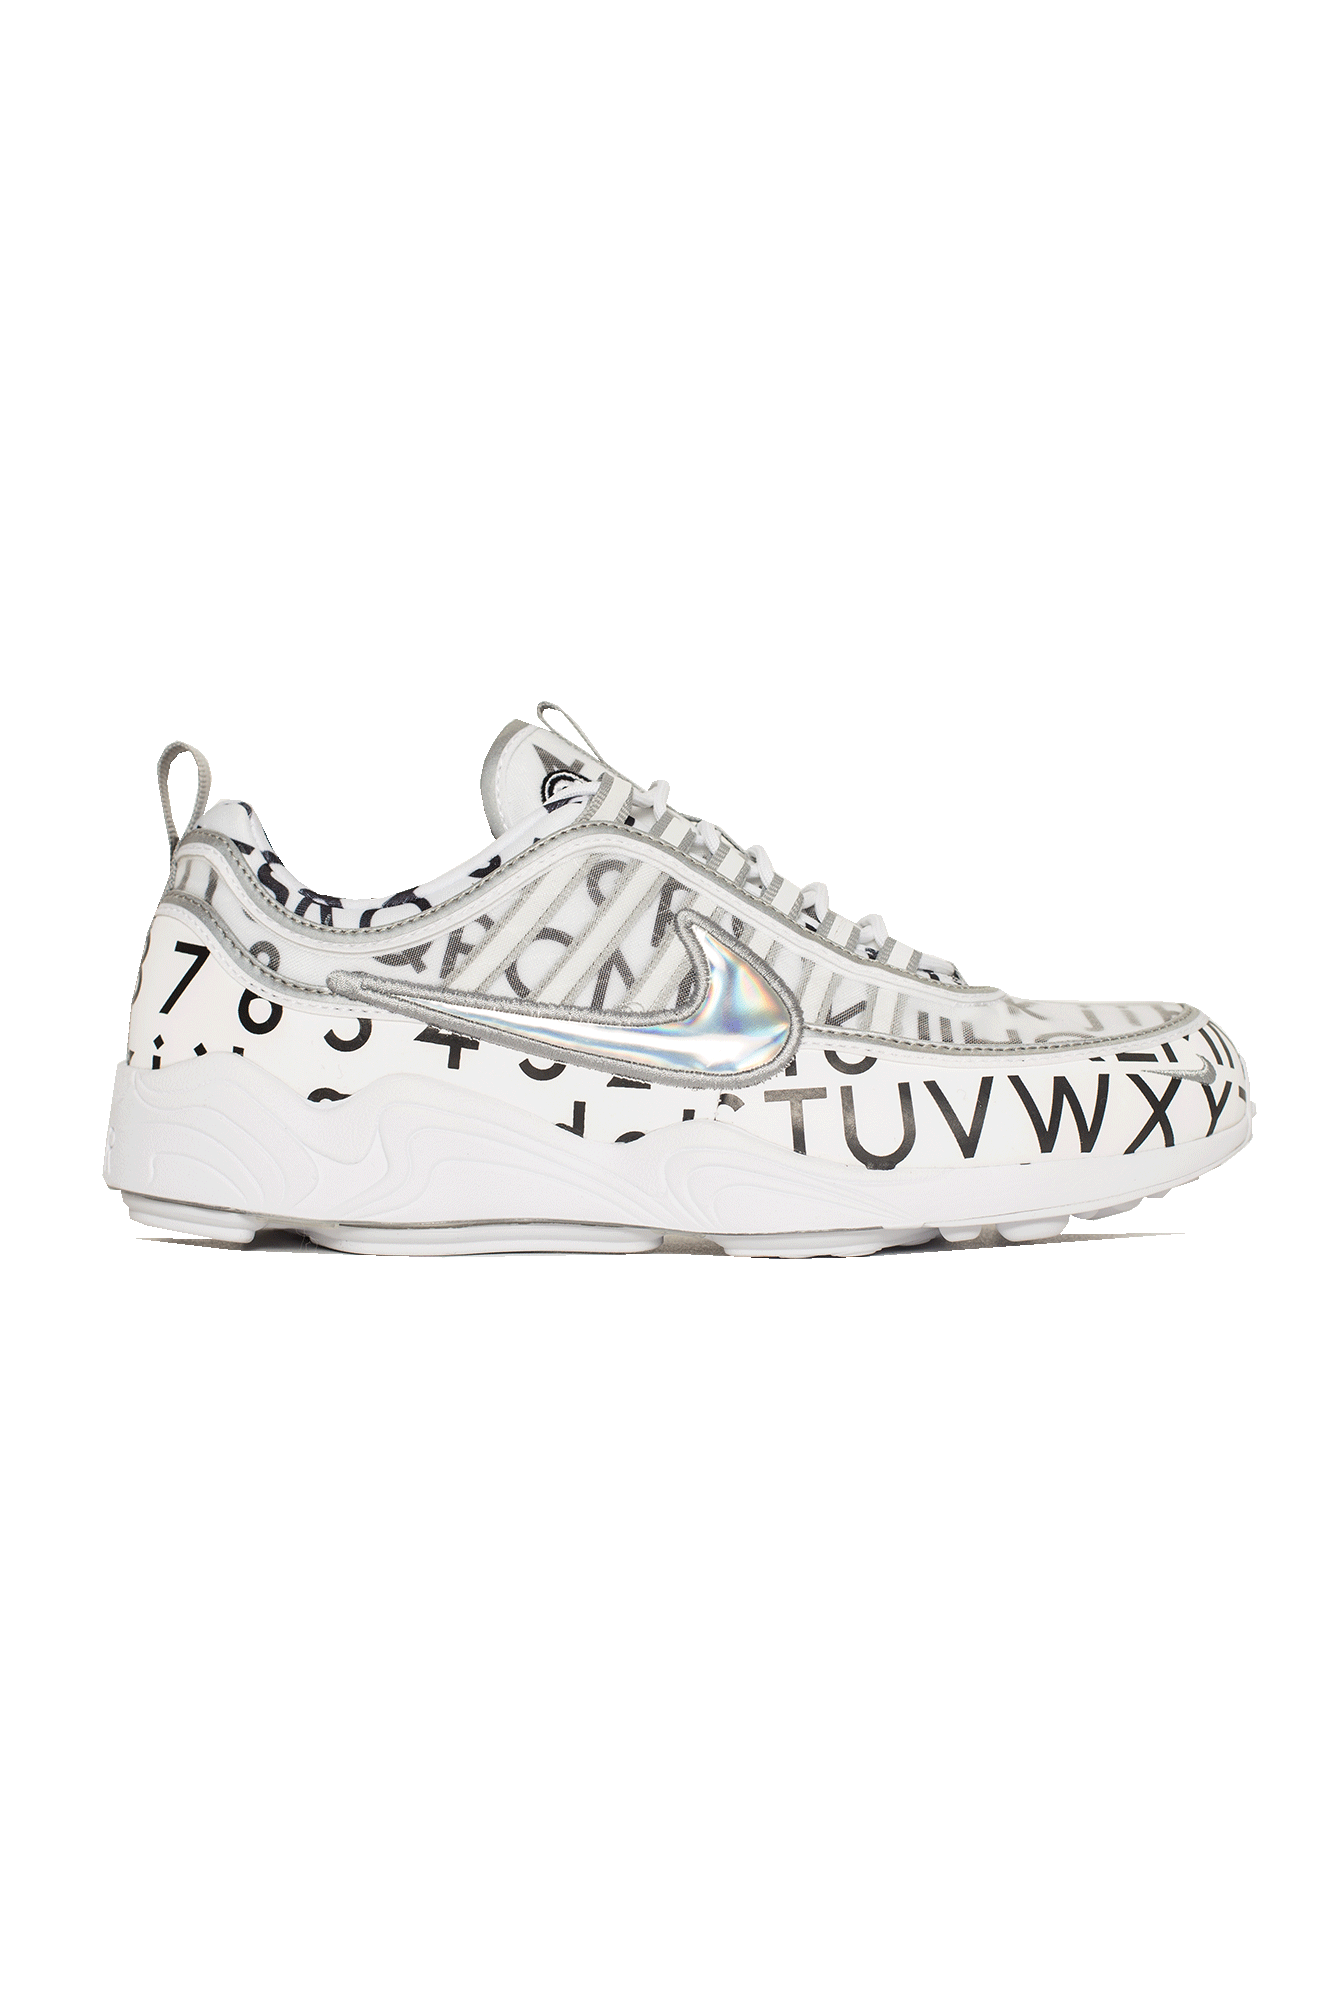 ... competitive price 5e37e c4393 Very Goods Nikelab Air Zoom Spiridon 16  GPX Roundel x Nikelab 904336 ... 88dd57466